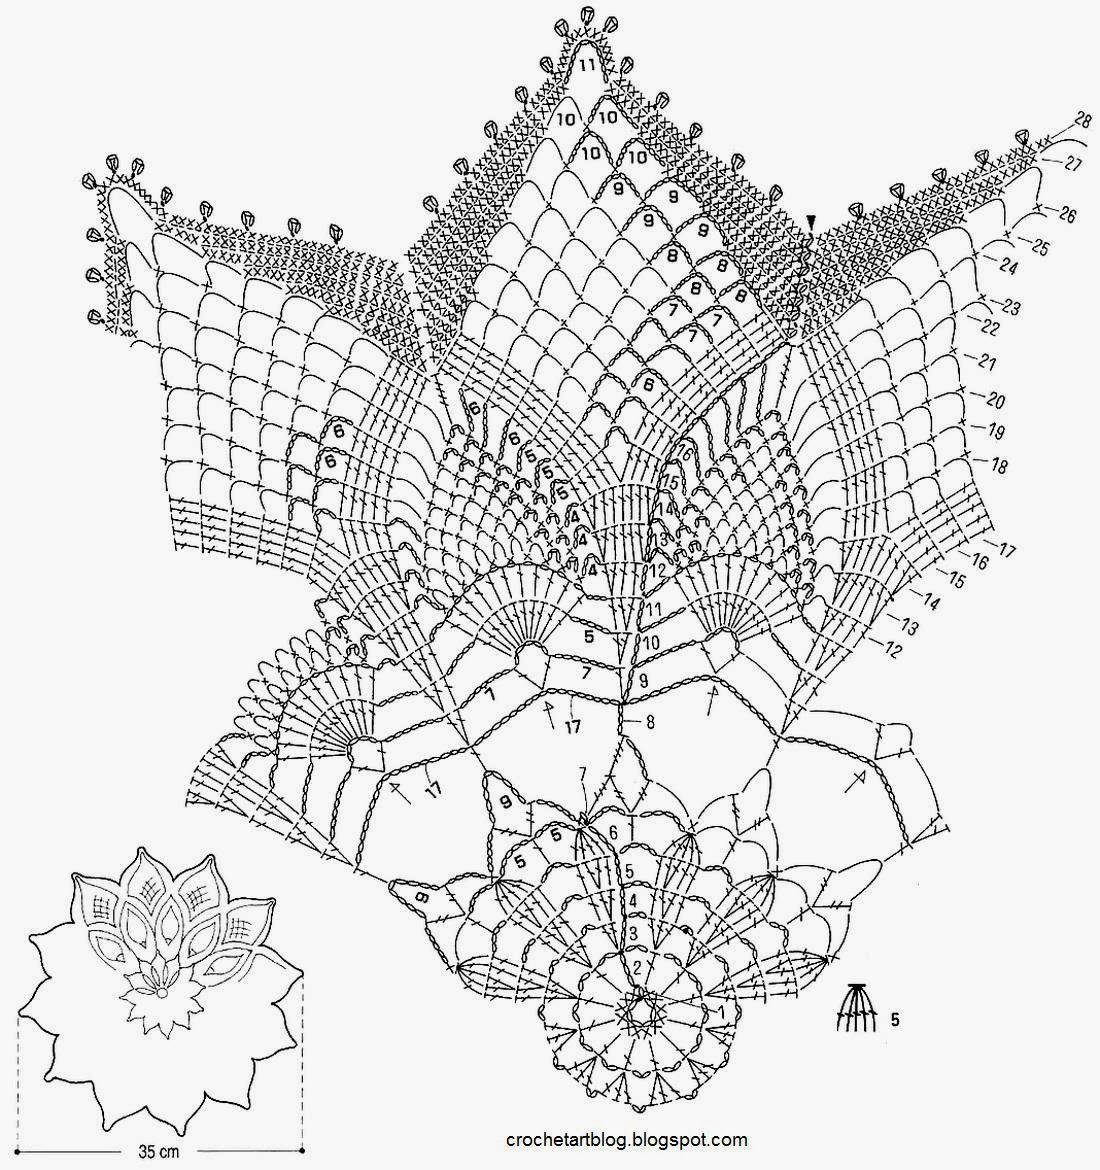 Crochet Art Crochet Pattern Of Gorgeous Doily